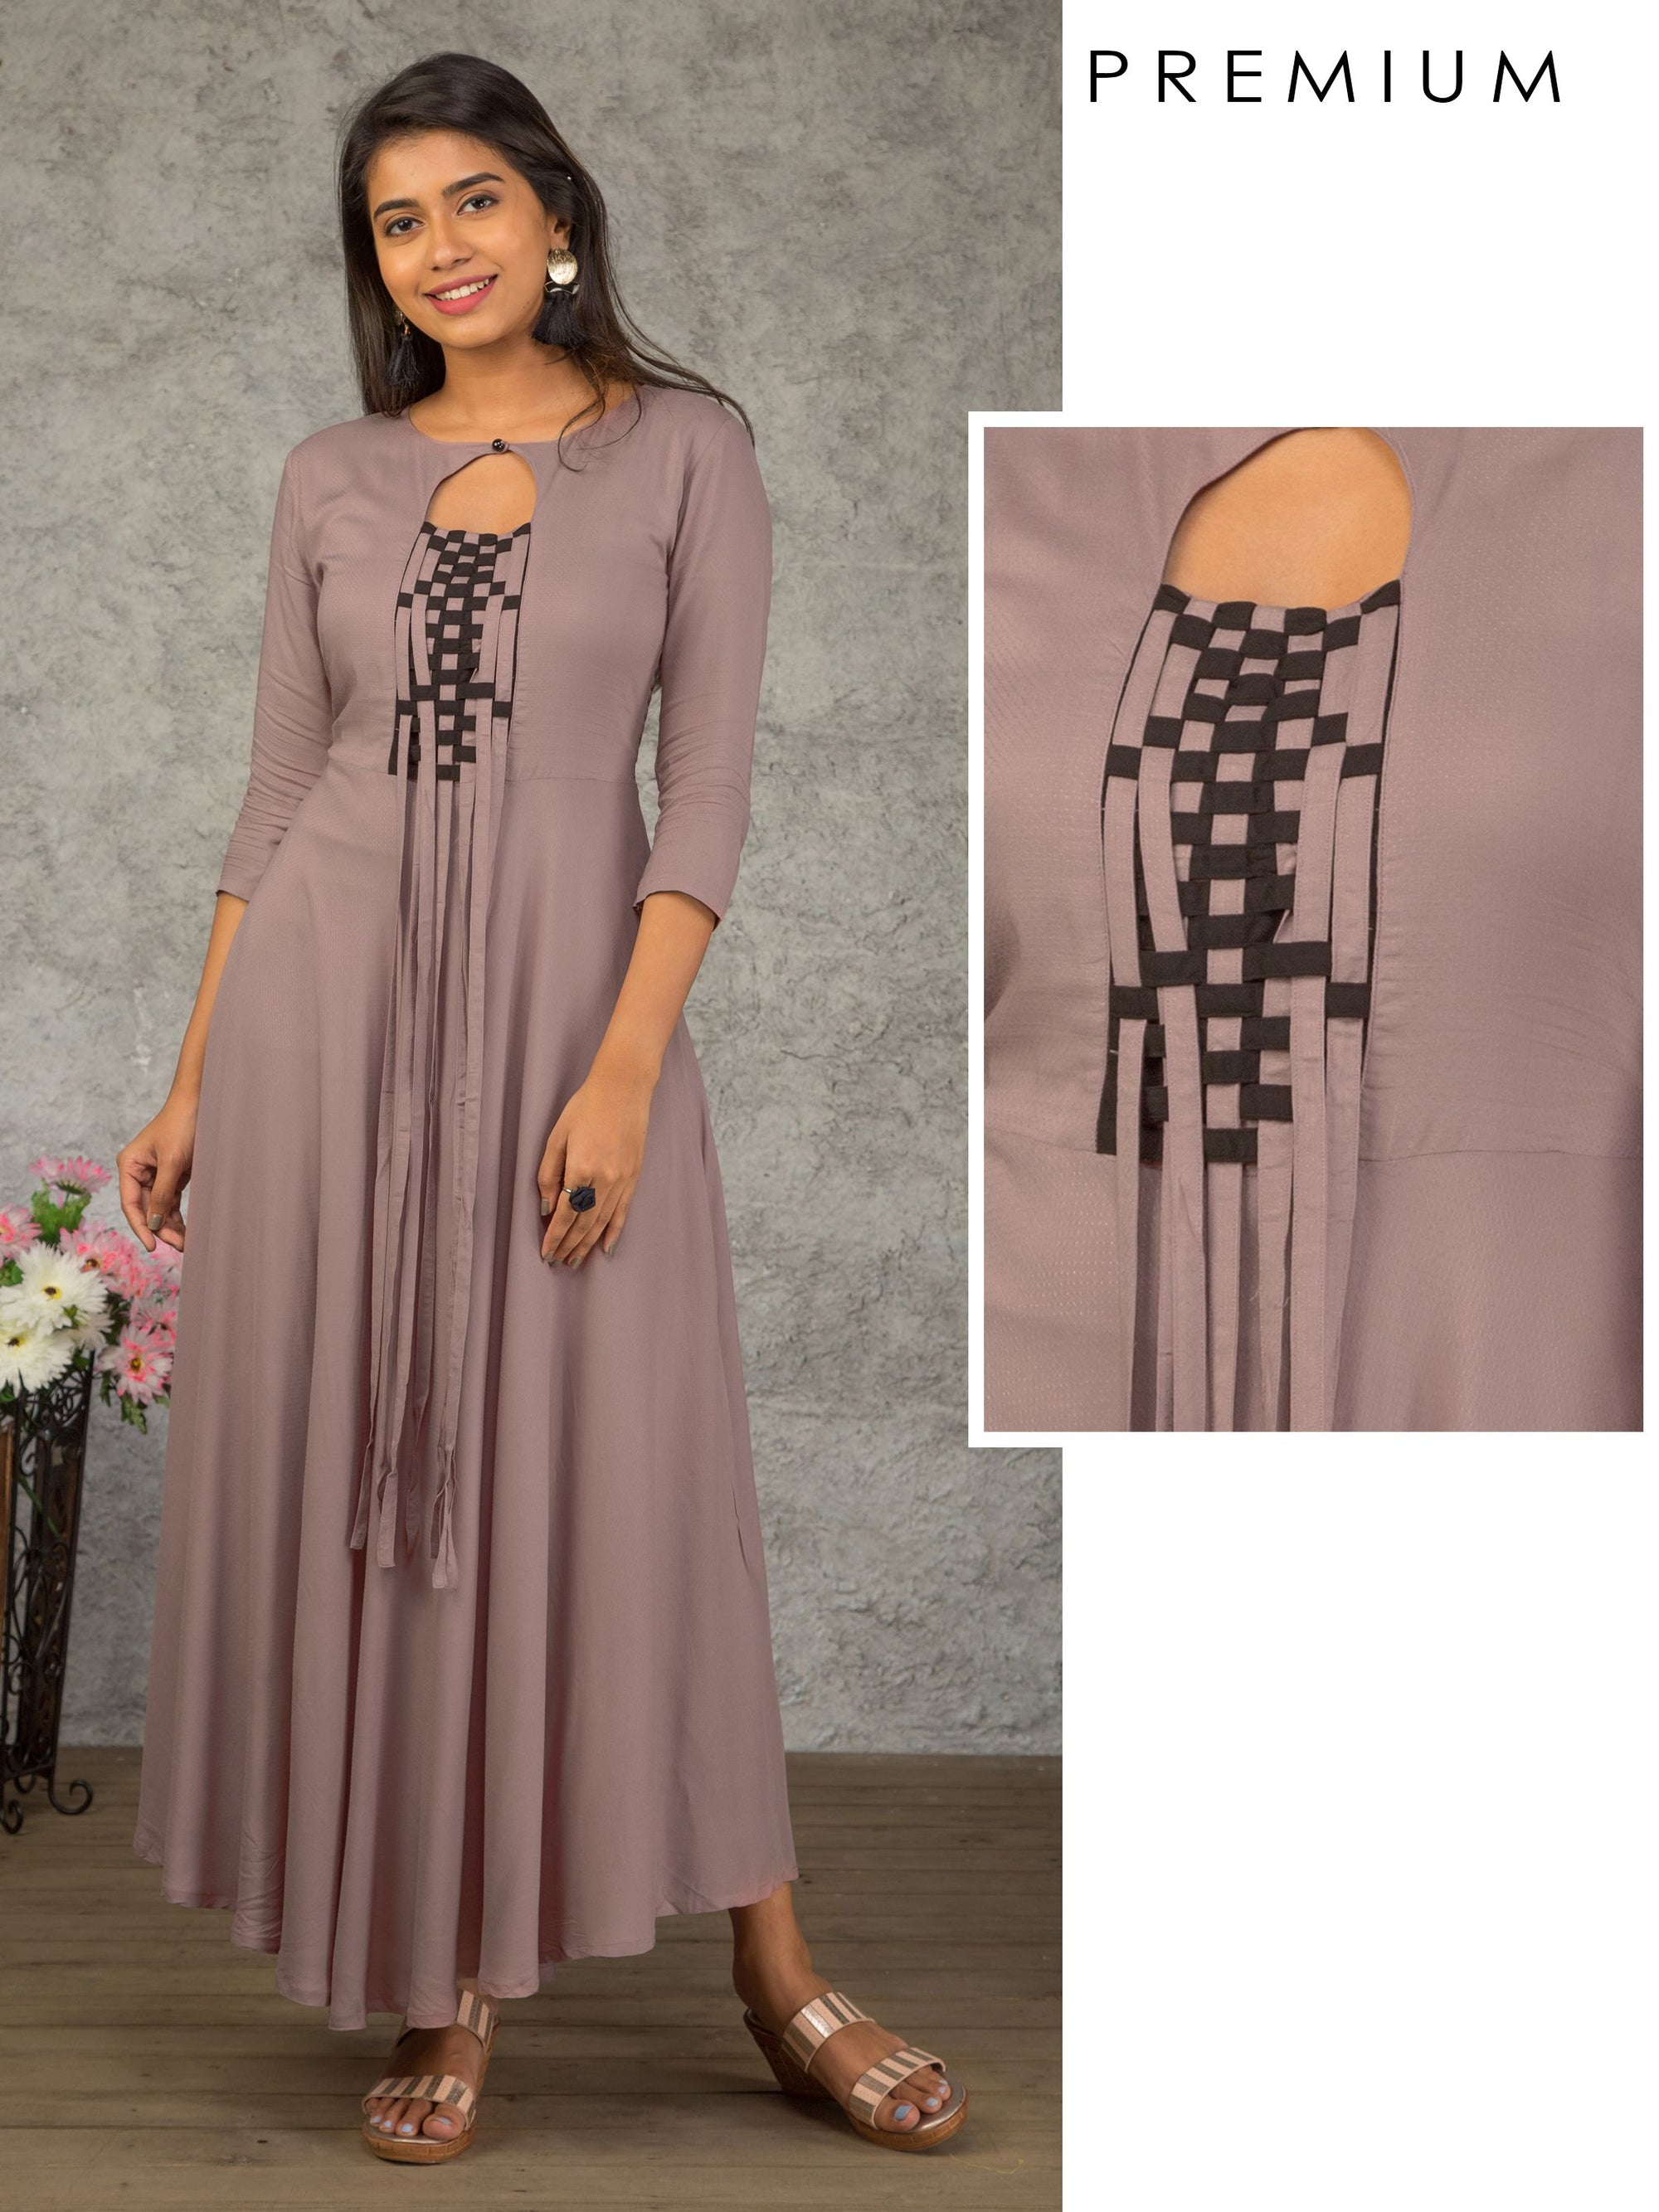 Stylish Tabs Enhanced Bias Cut Maxi